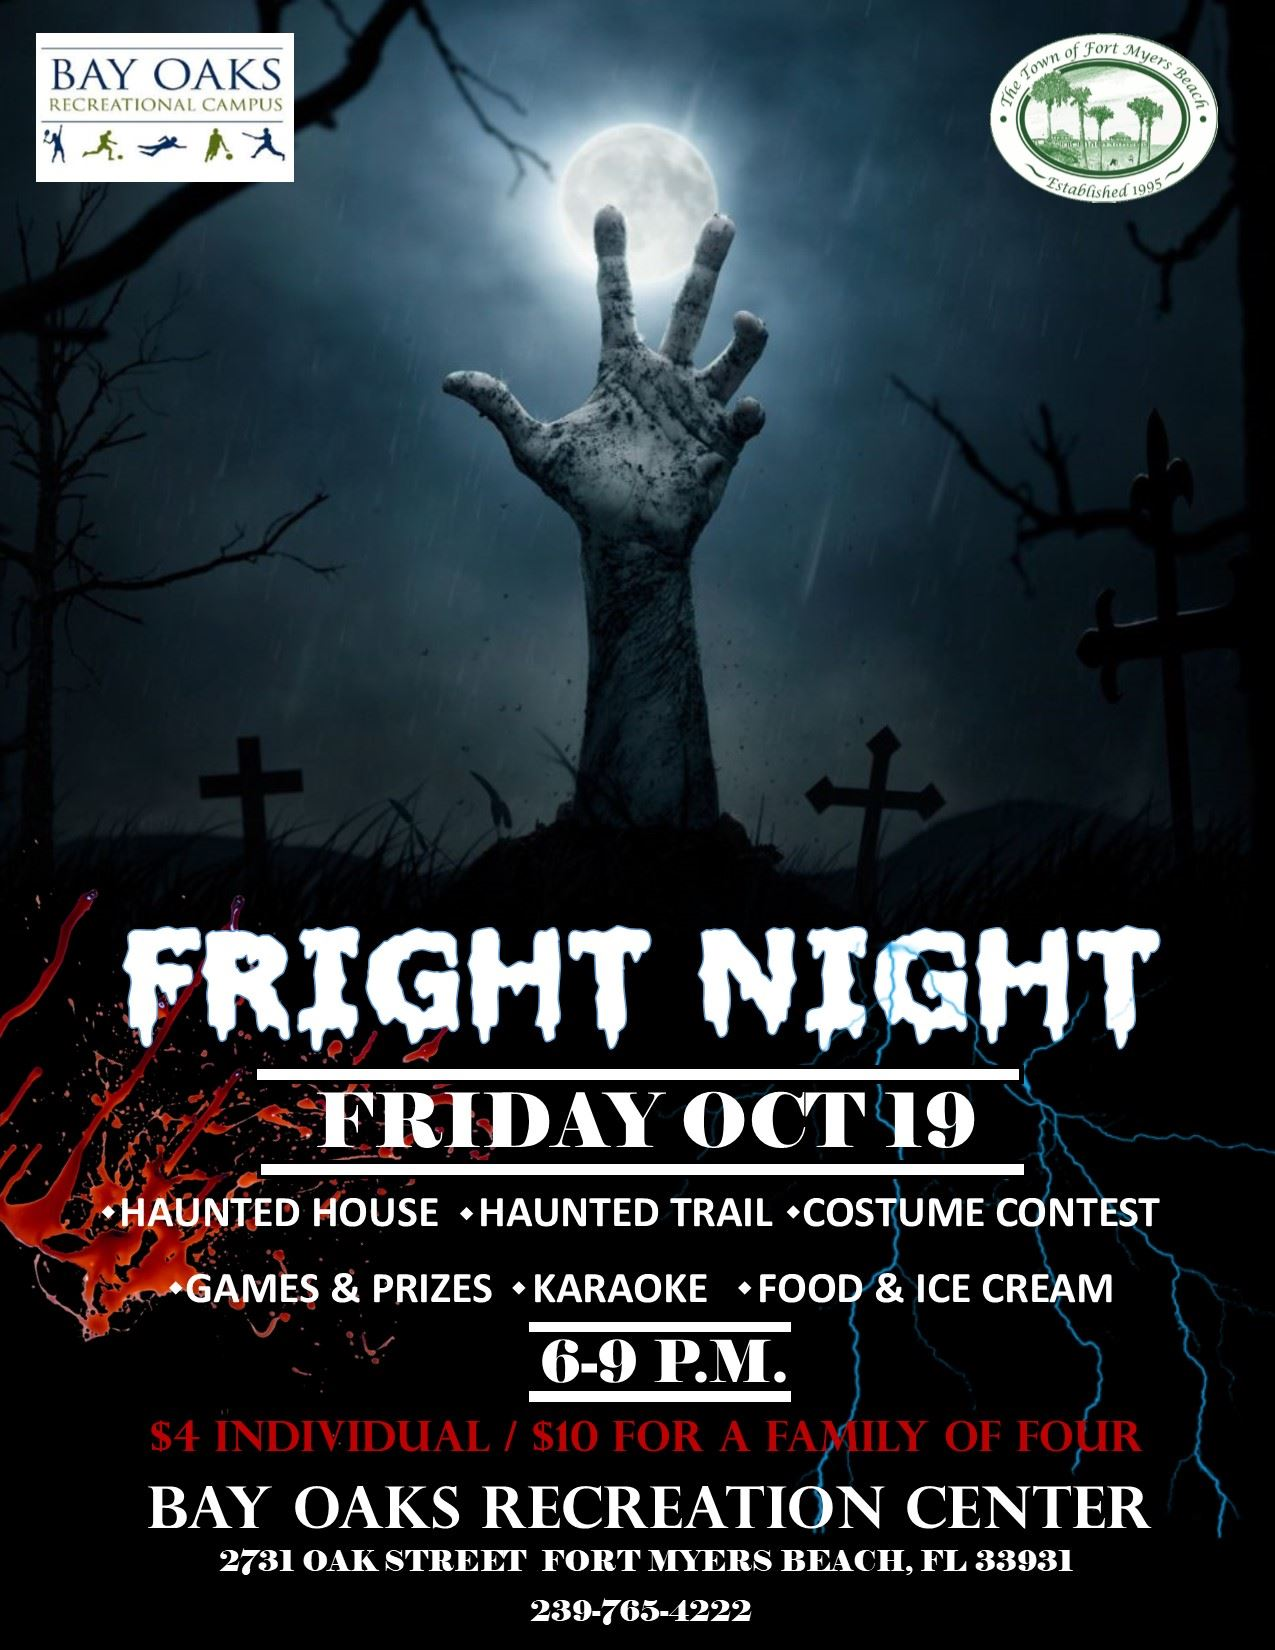 Fright Night flyer 2018